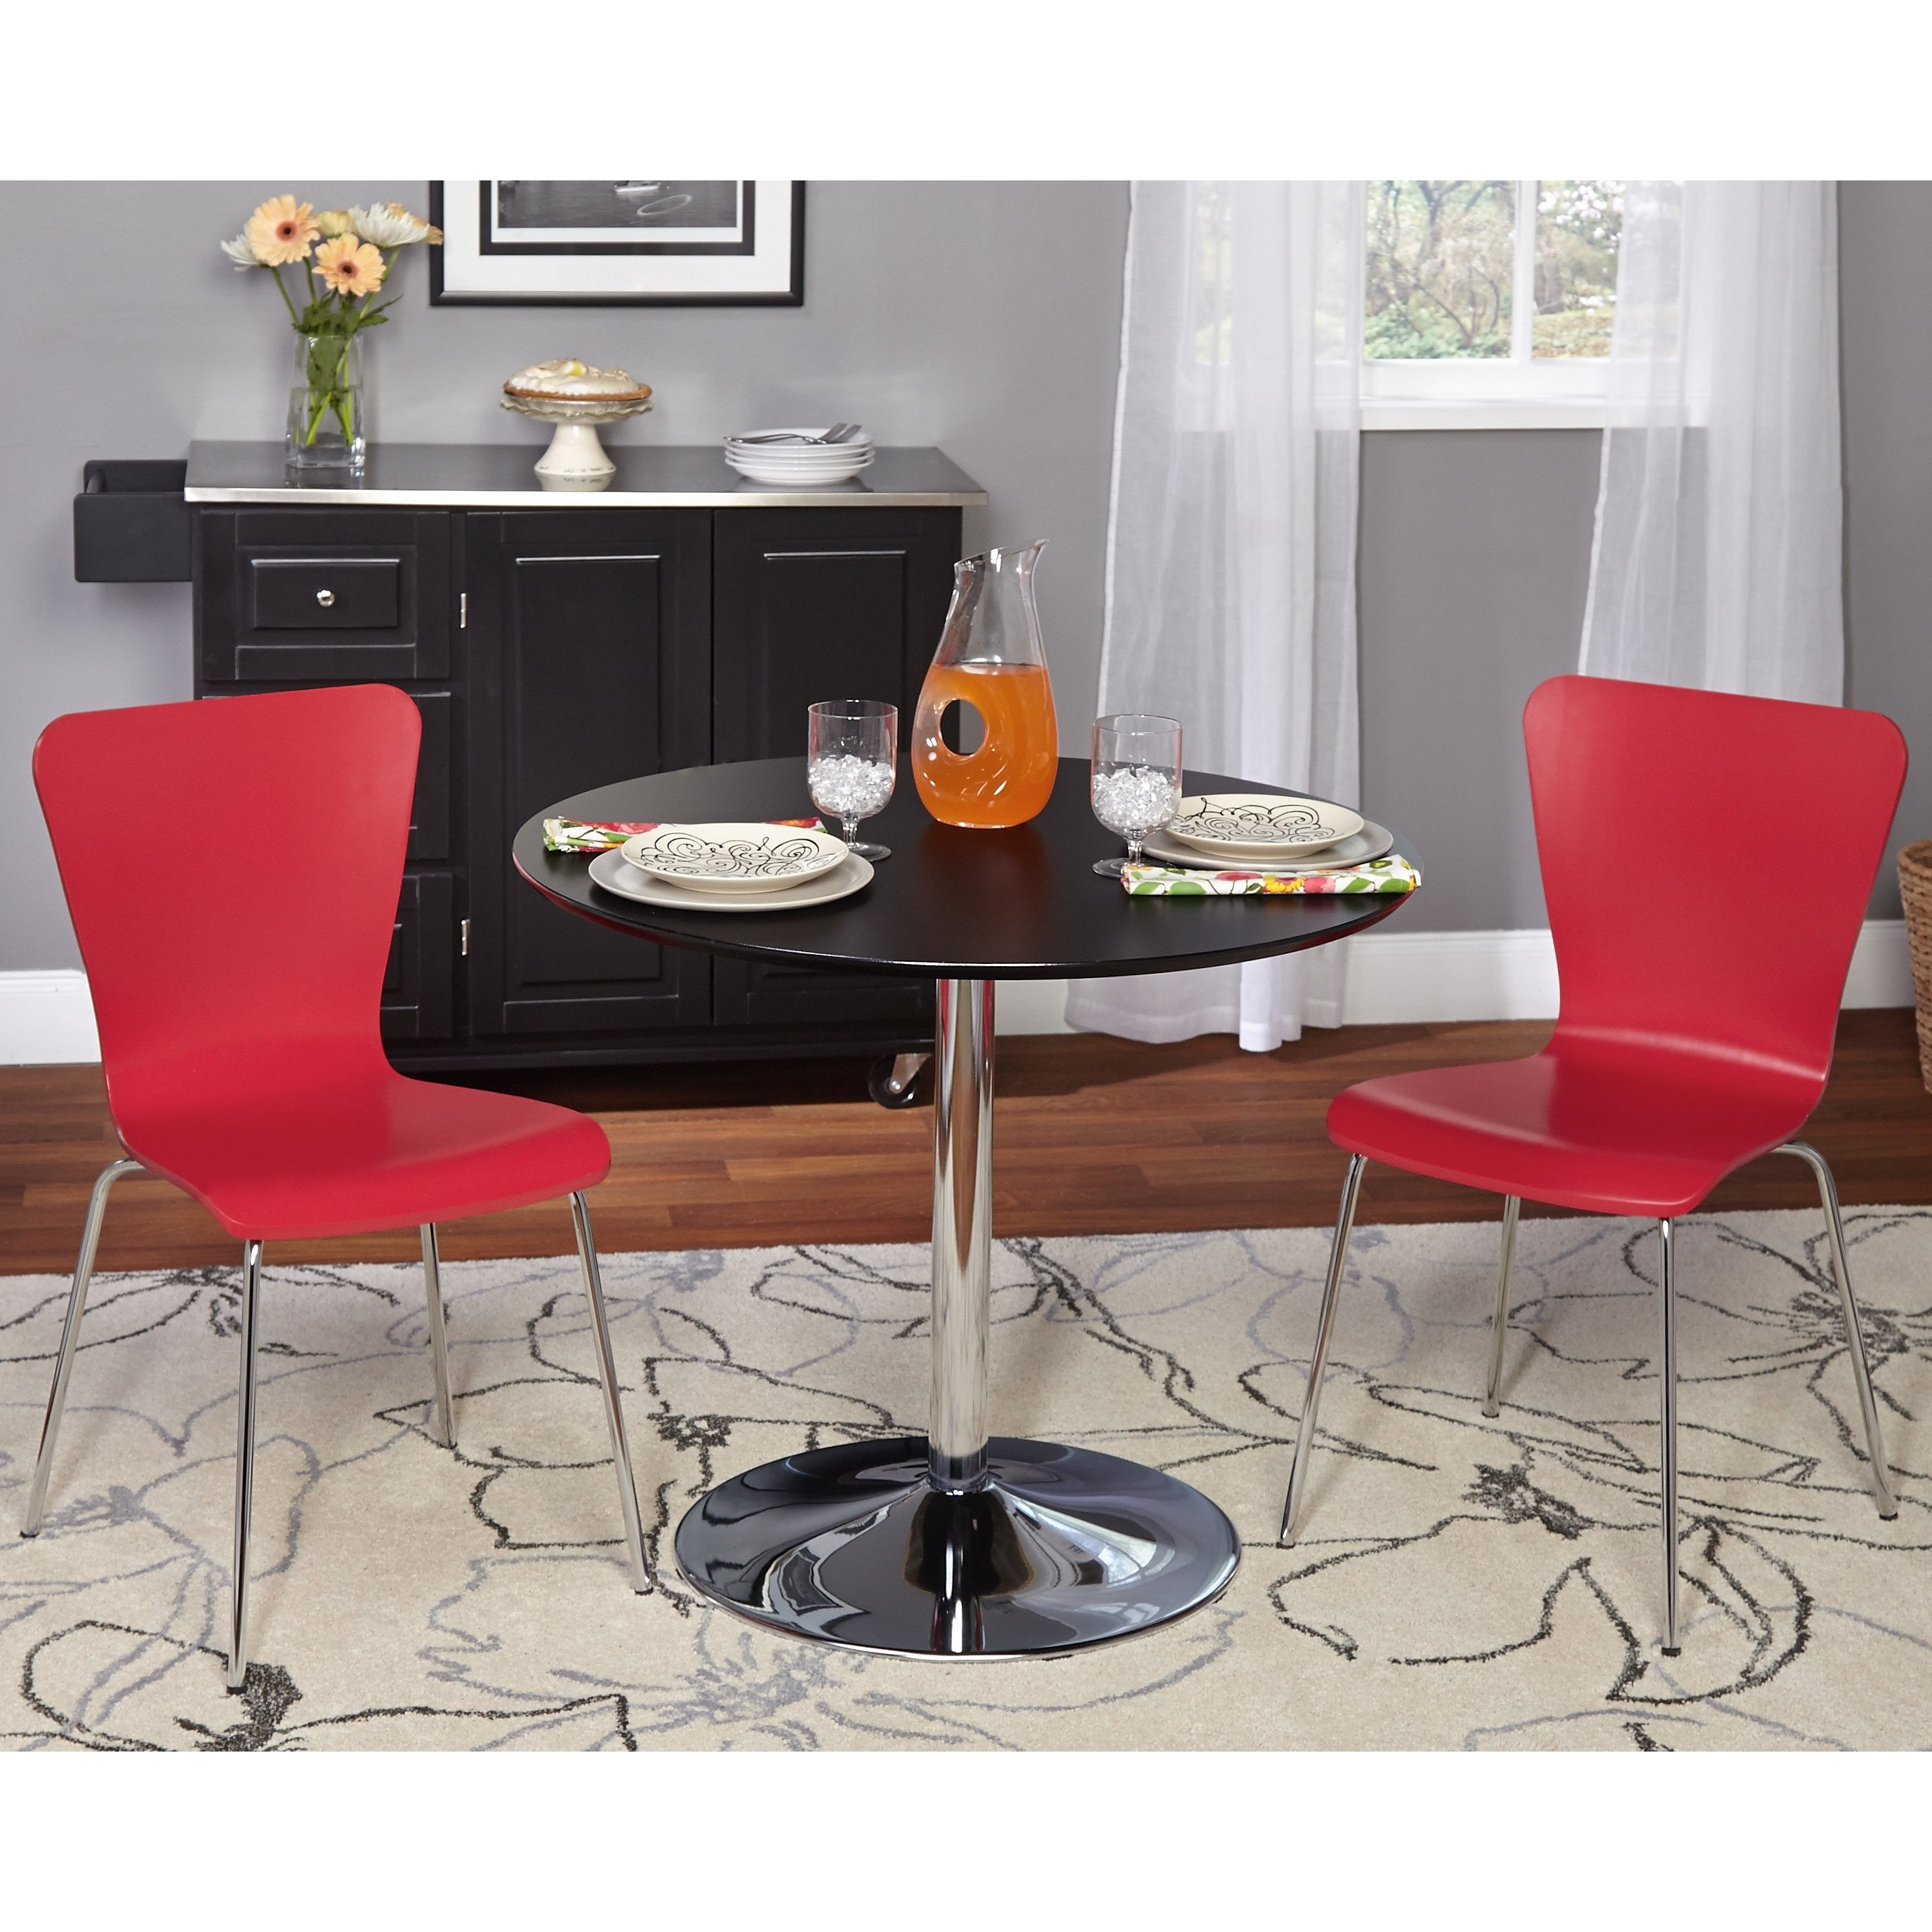 Latest Shop Simple Living 3 Piece Pisa Dining Set – Free Shipping Today Intended For Pisa Dining Tables (View 9 of 25)